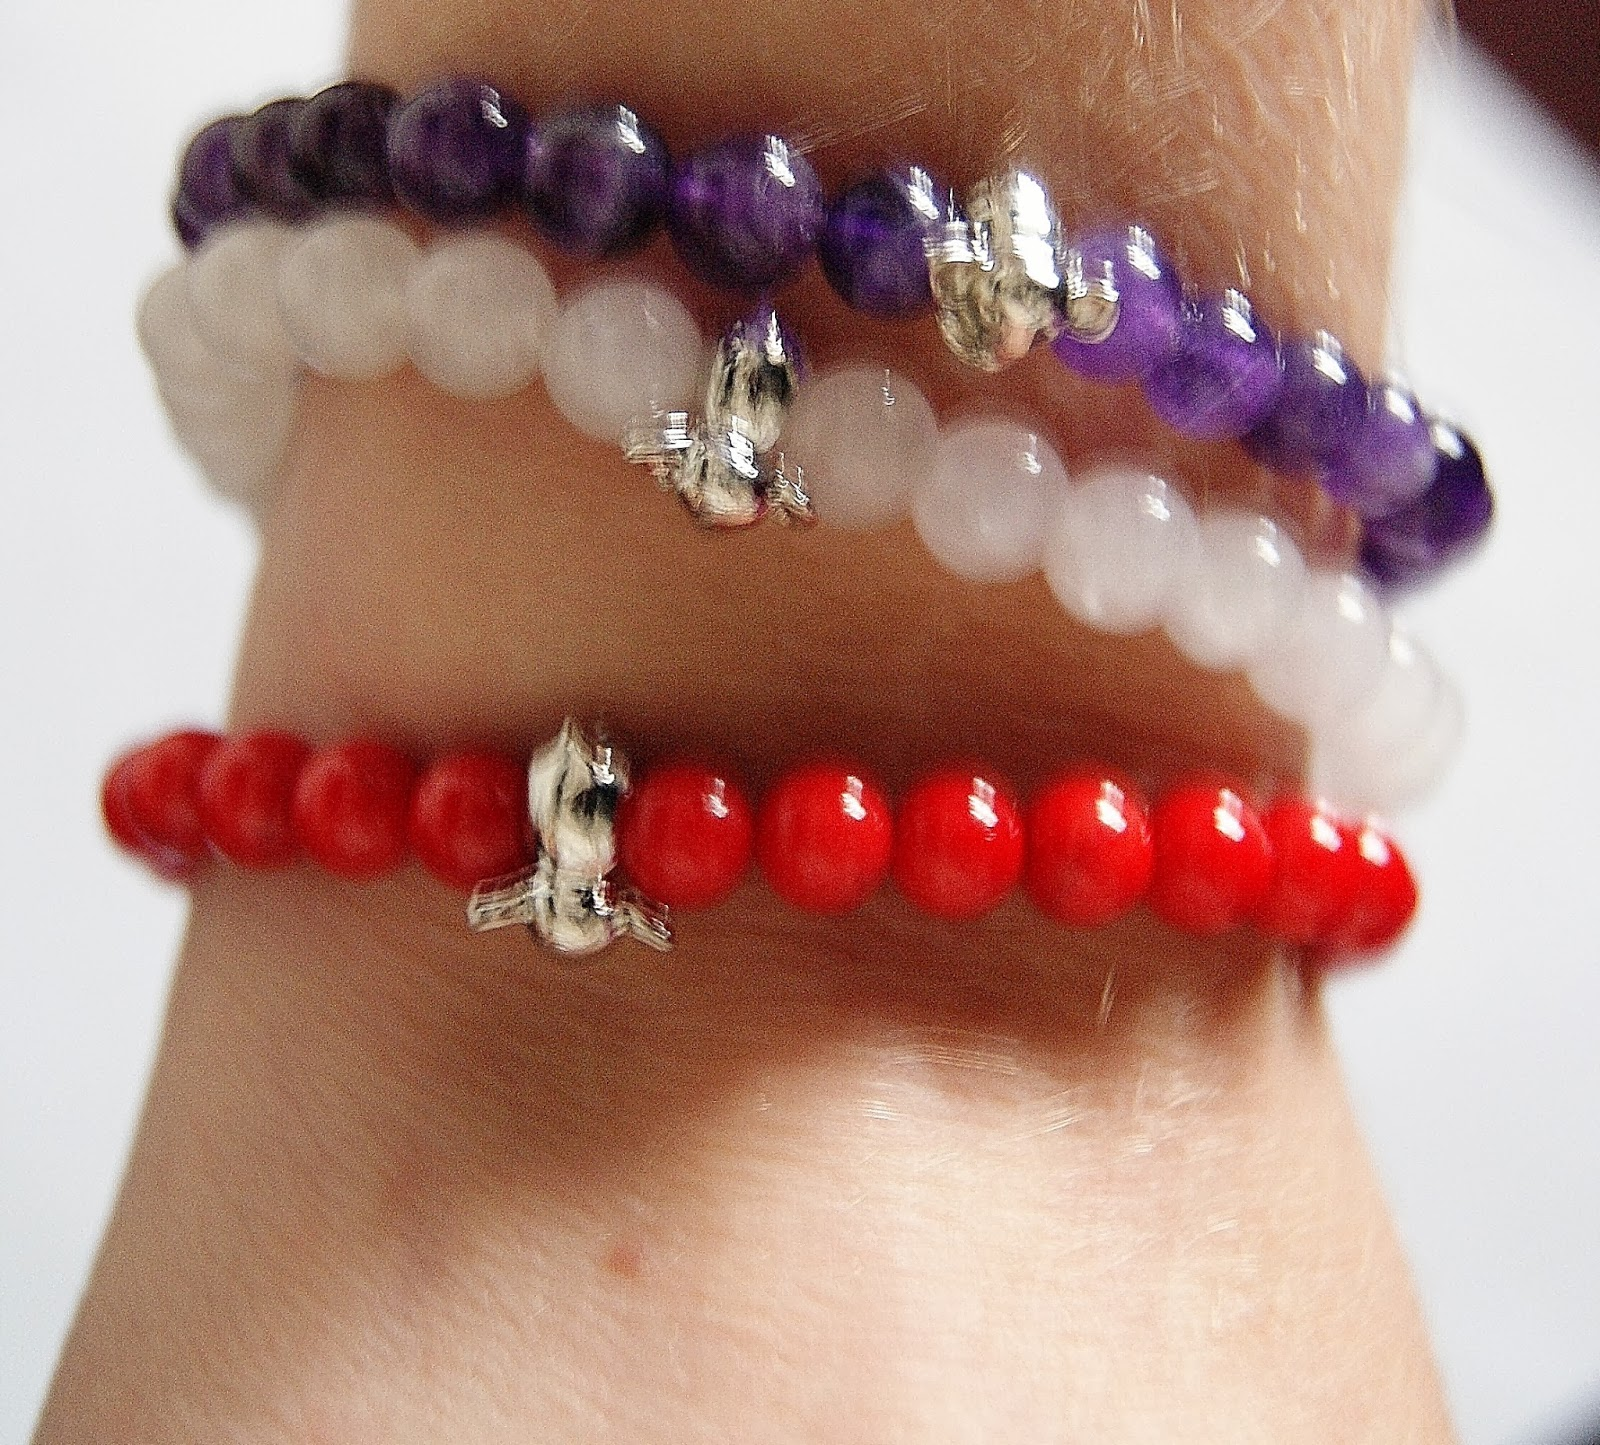 Joseph Nogucci Memory Stone Elephant Bracelets: Purple Amethyst Friendship, White Jade Renewal, Red Coral Love Fashion Style Jewlery Melanie.Ps The Purple Scarf Toronto Canadian